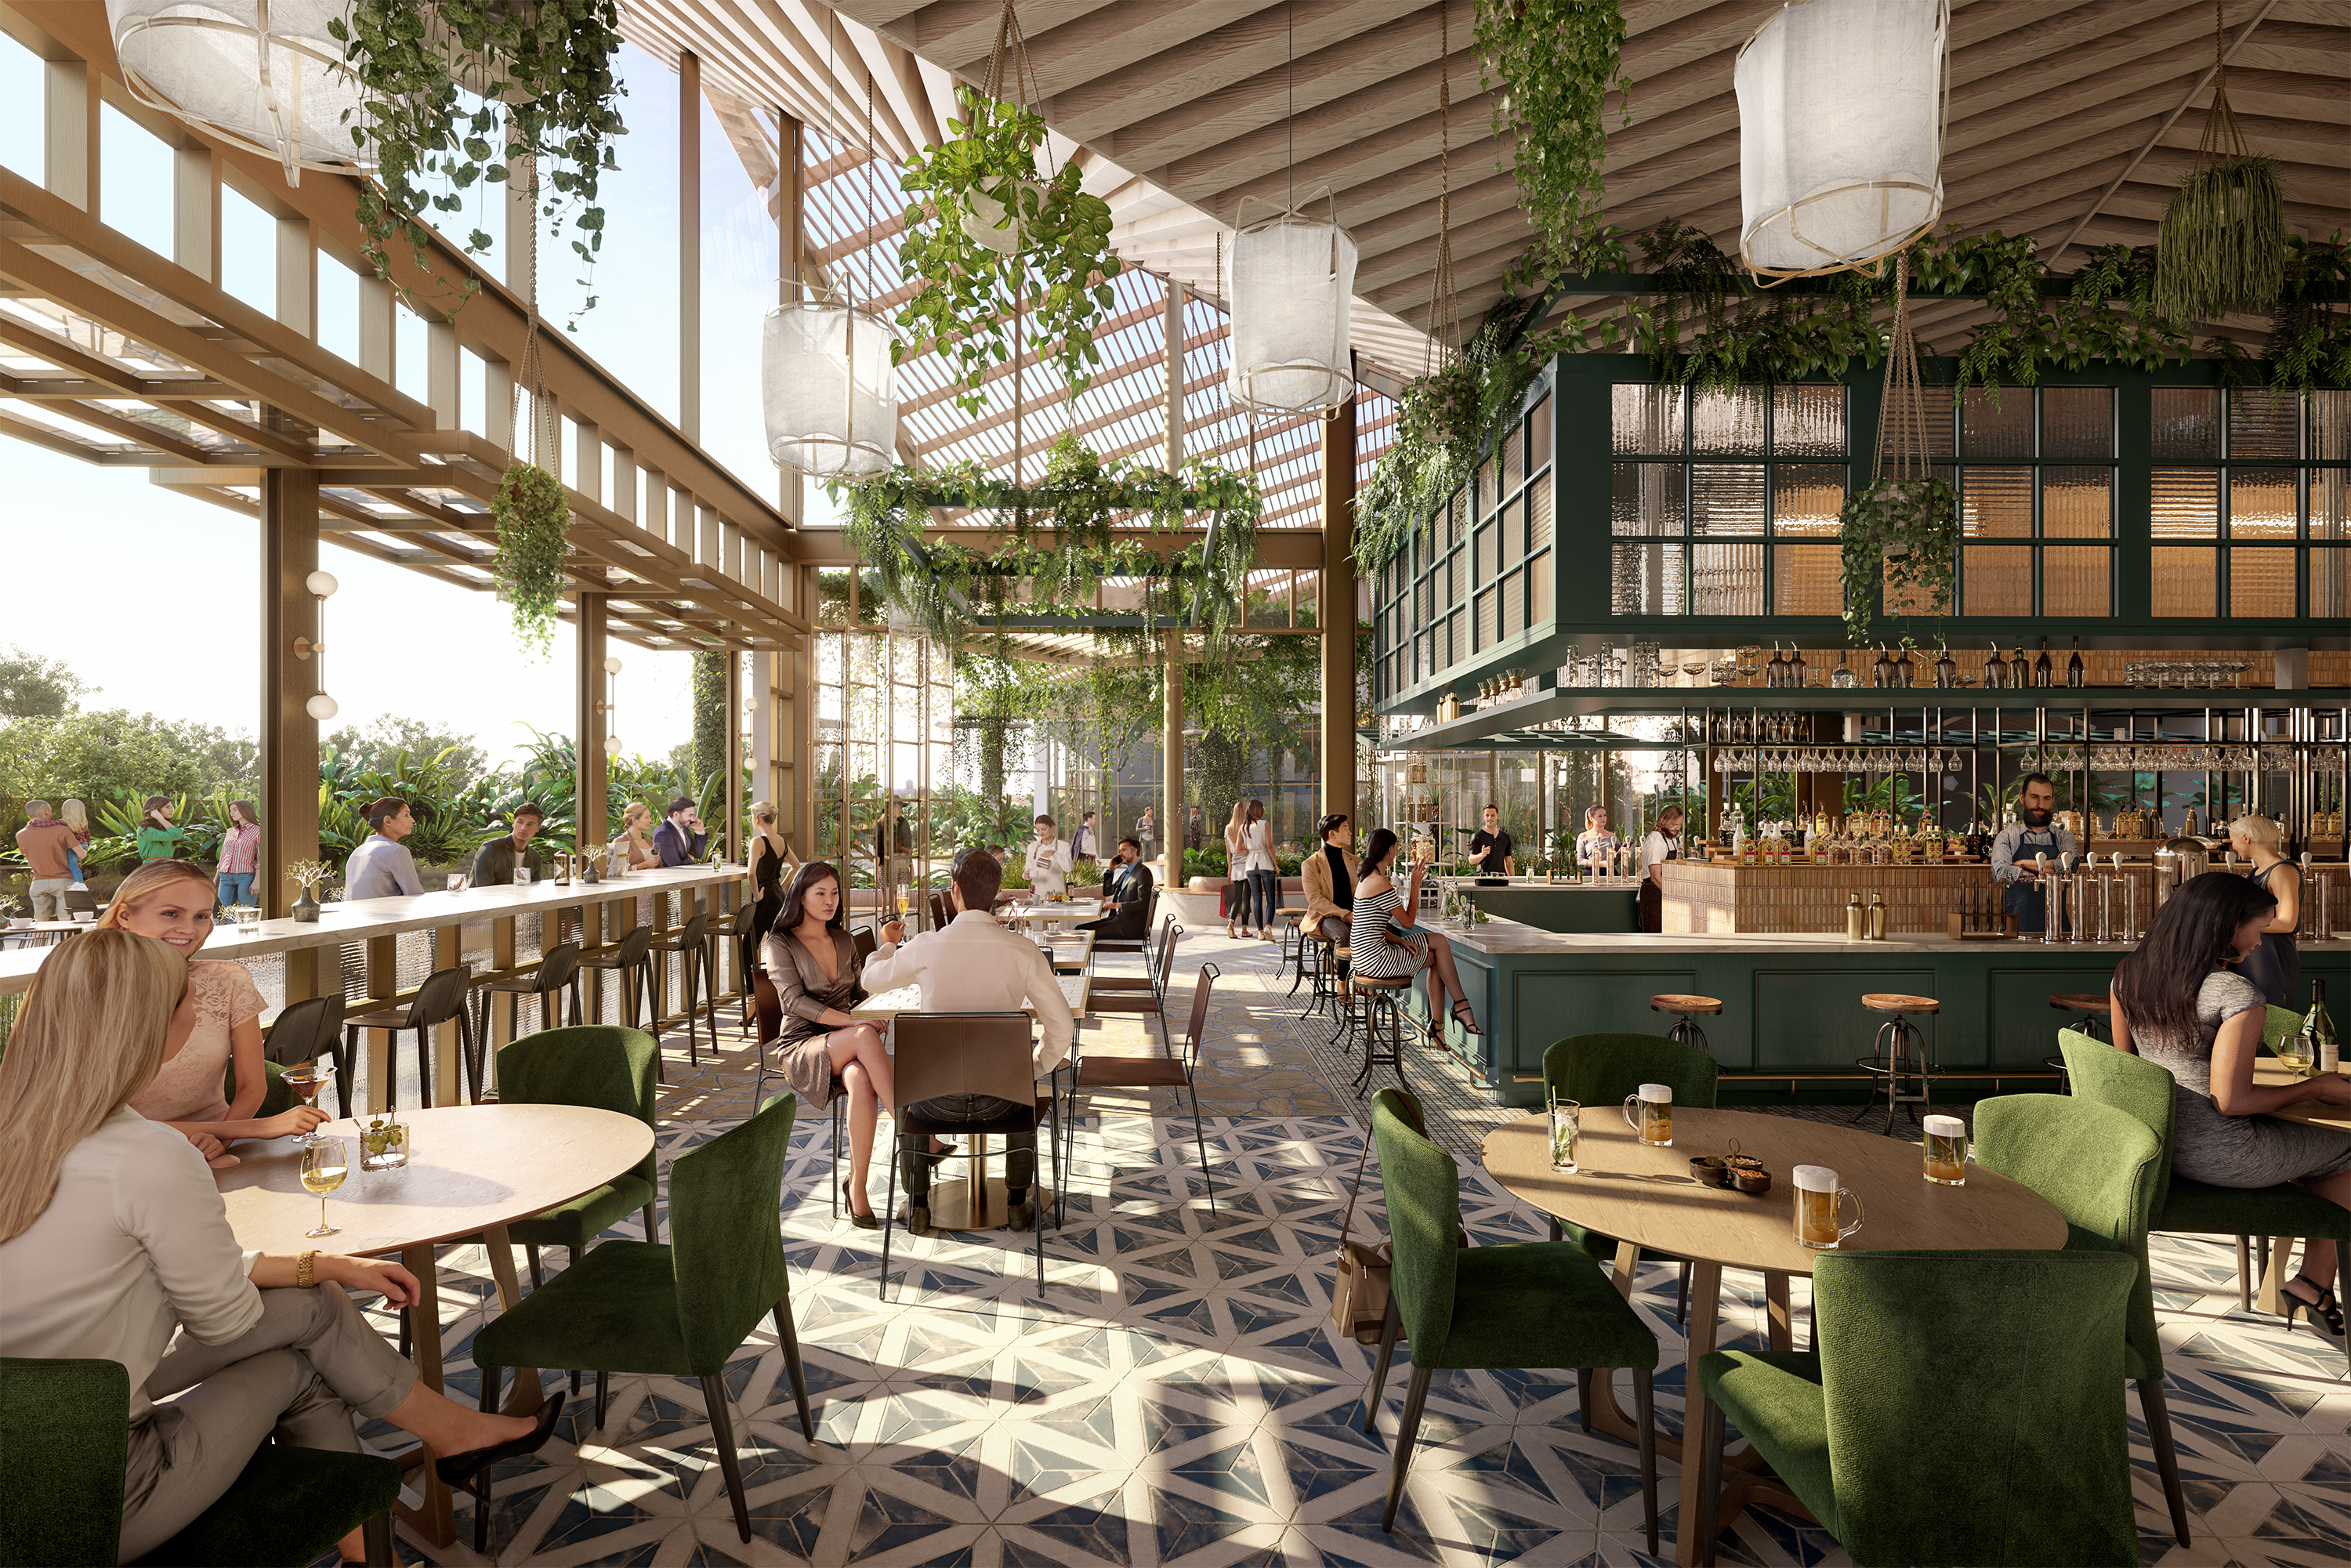 Expansion of Leisure and Dining Precinct